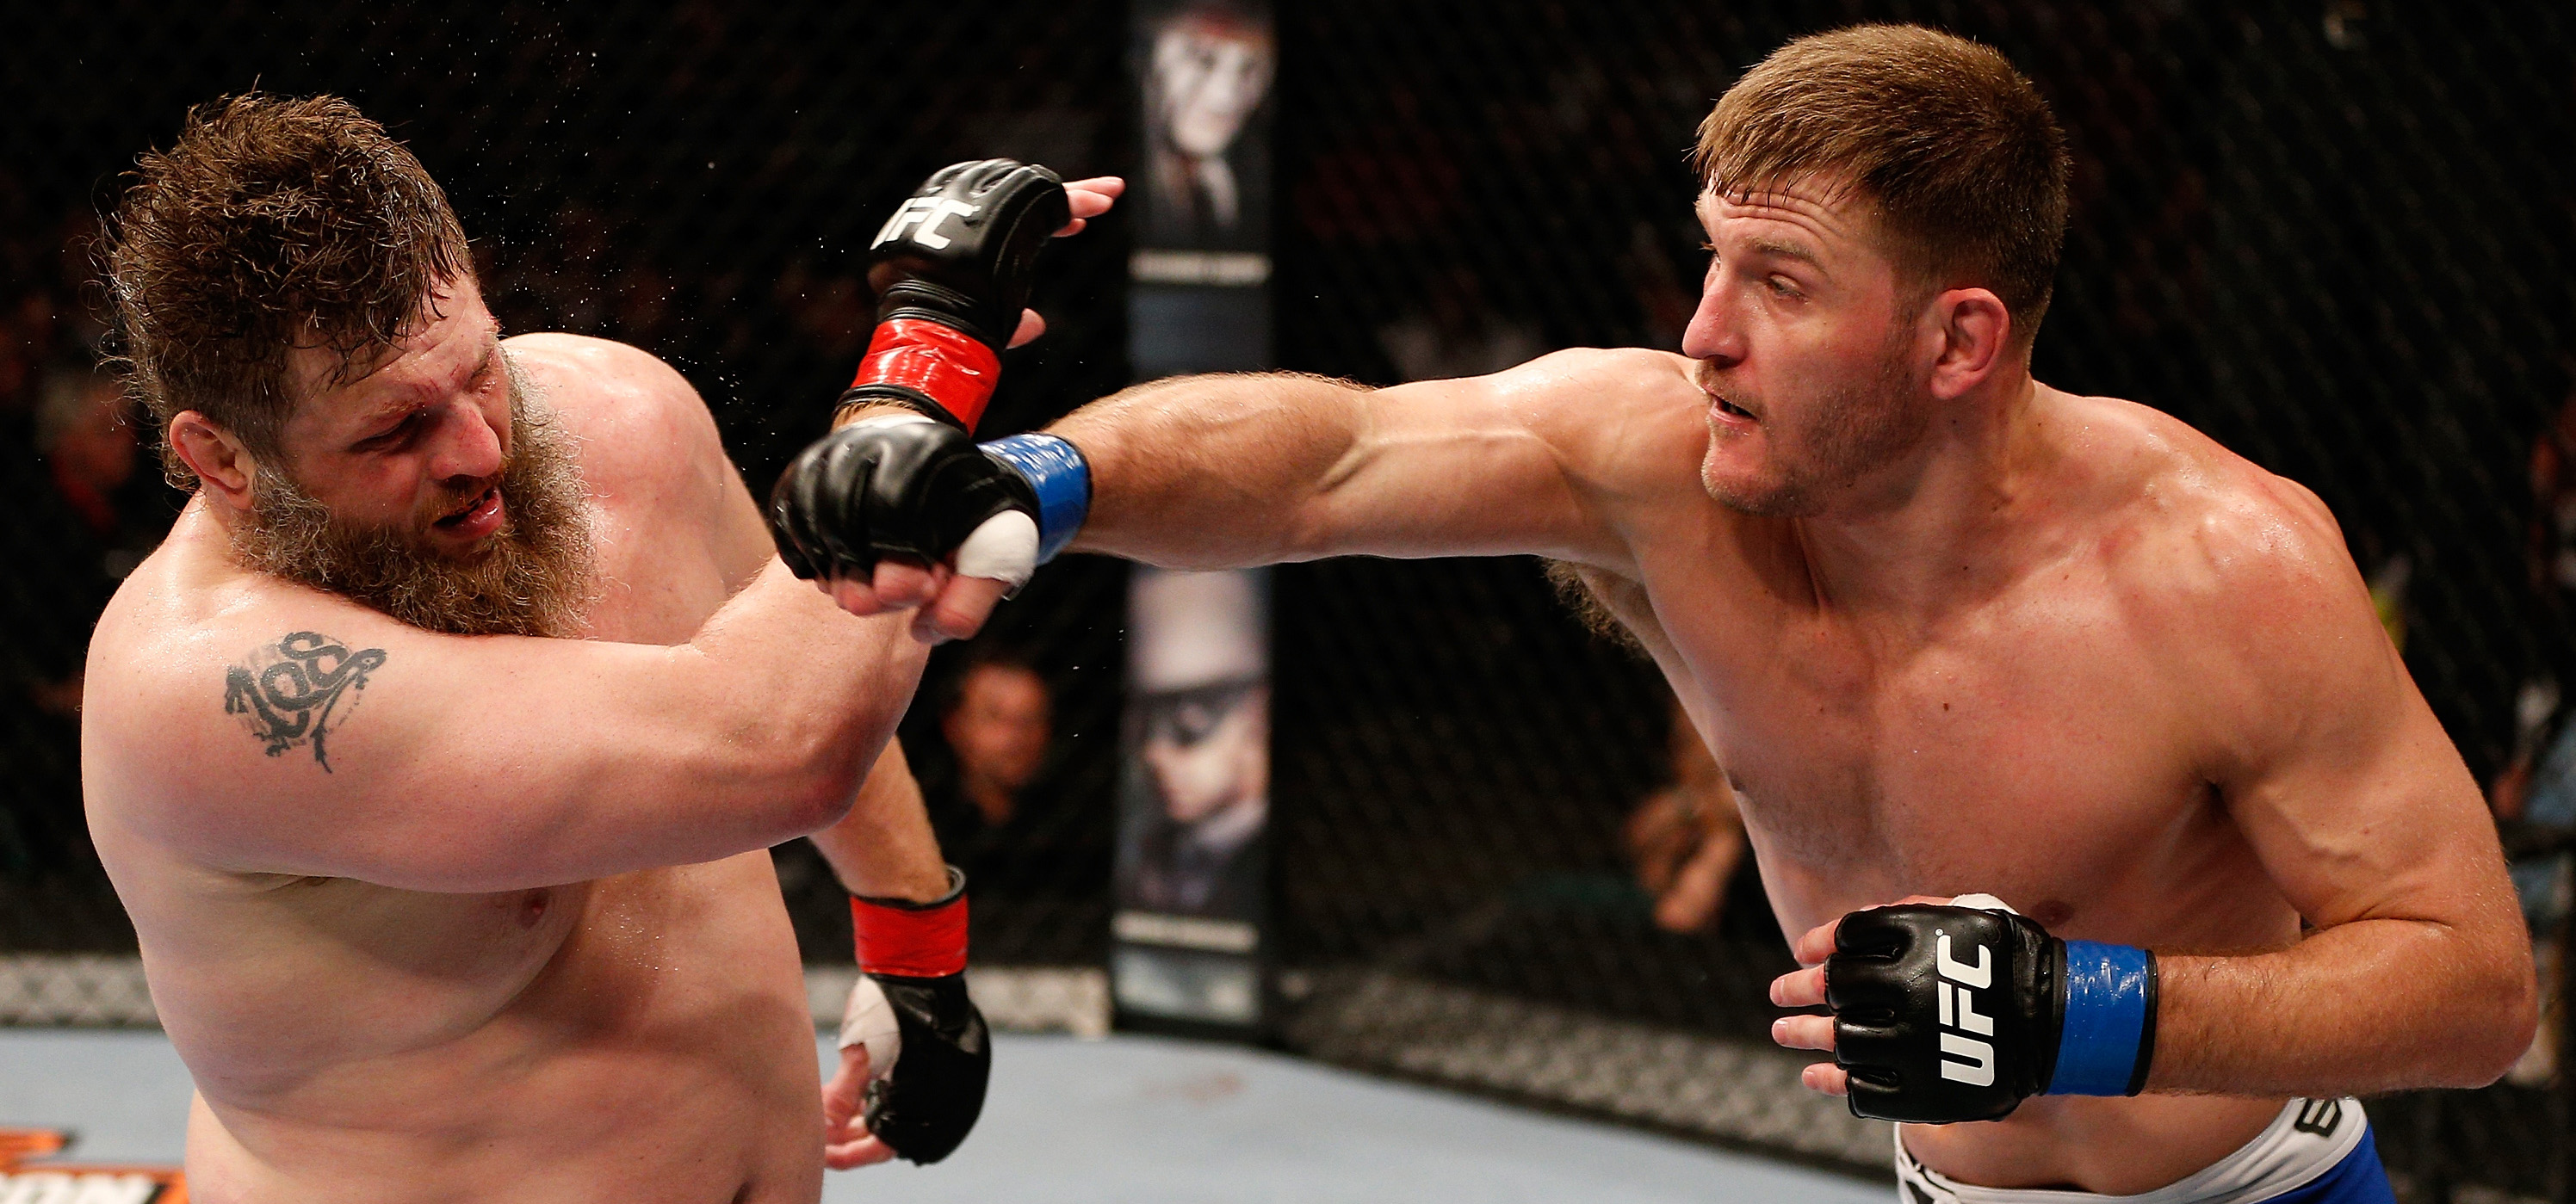 UFC heavyweight Stipe Miocic